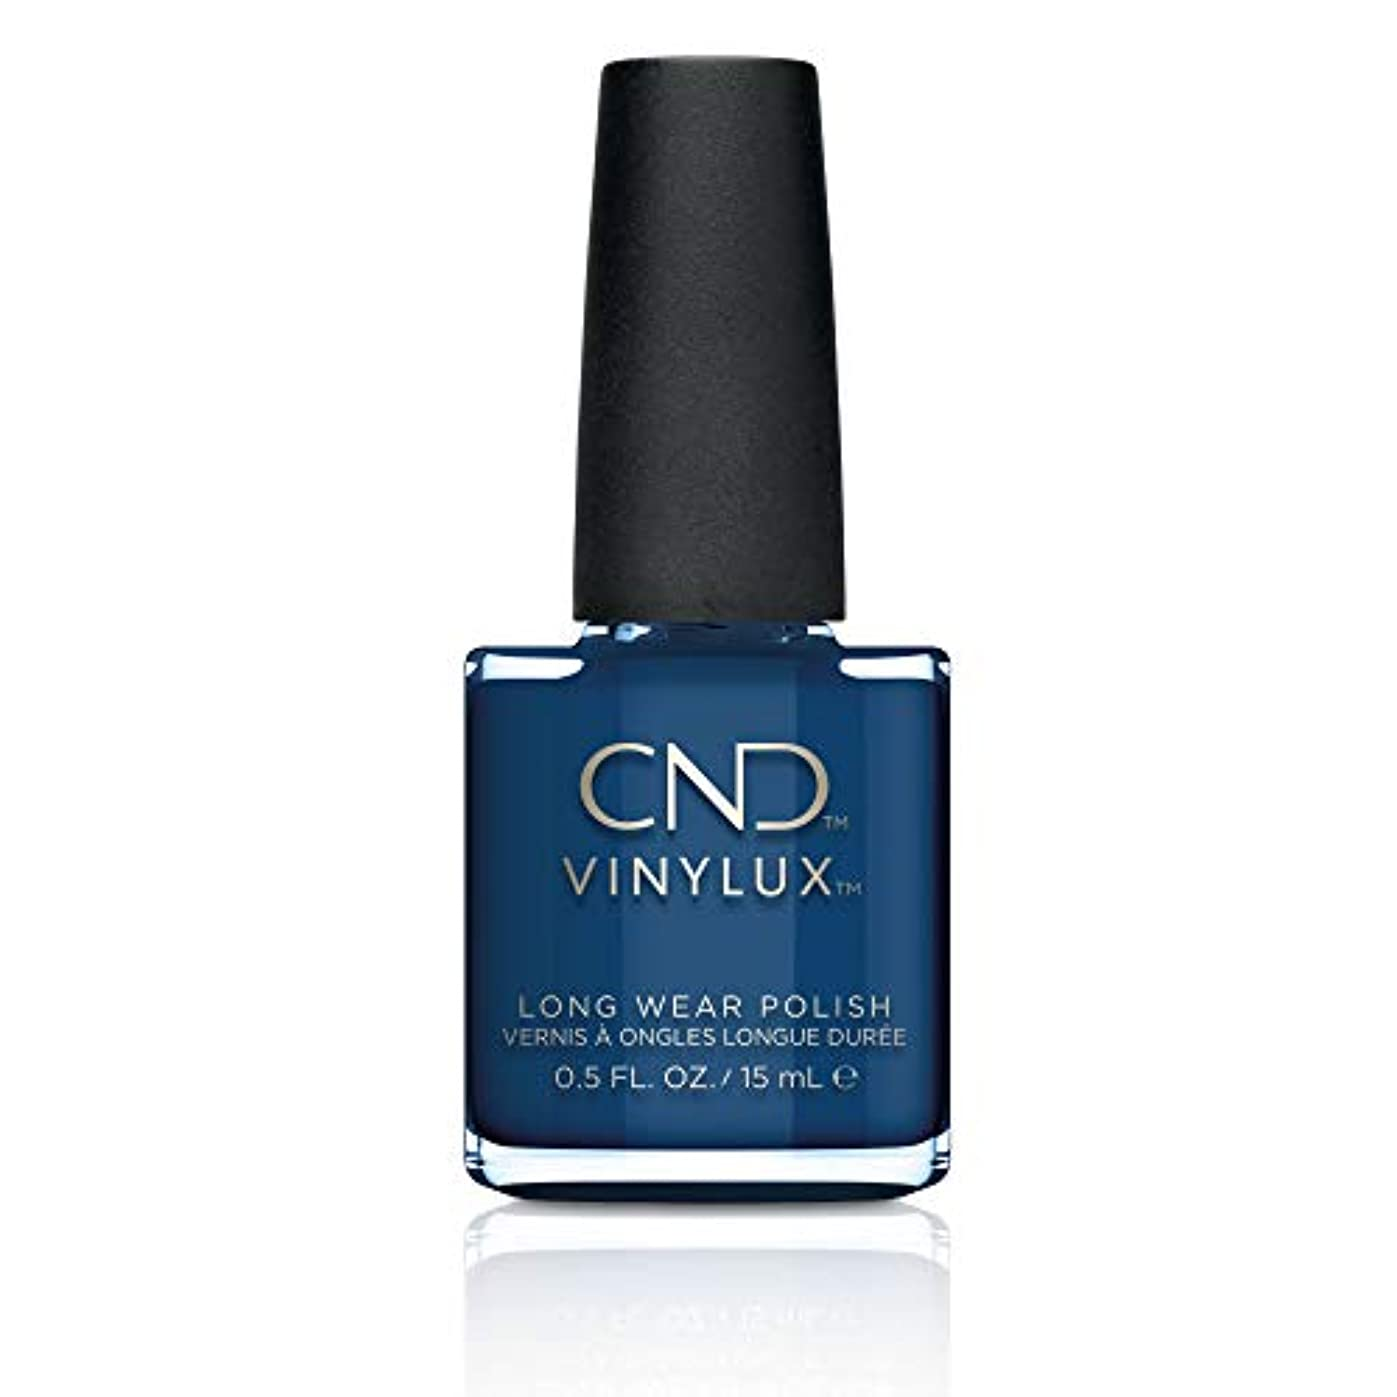 CND Vinylux Nail Polish - Fall 2017 Glacial Illusion Collection - Winter Nights - 0.5oz / 15ml